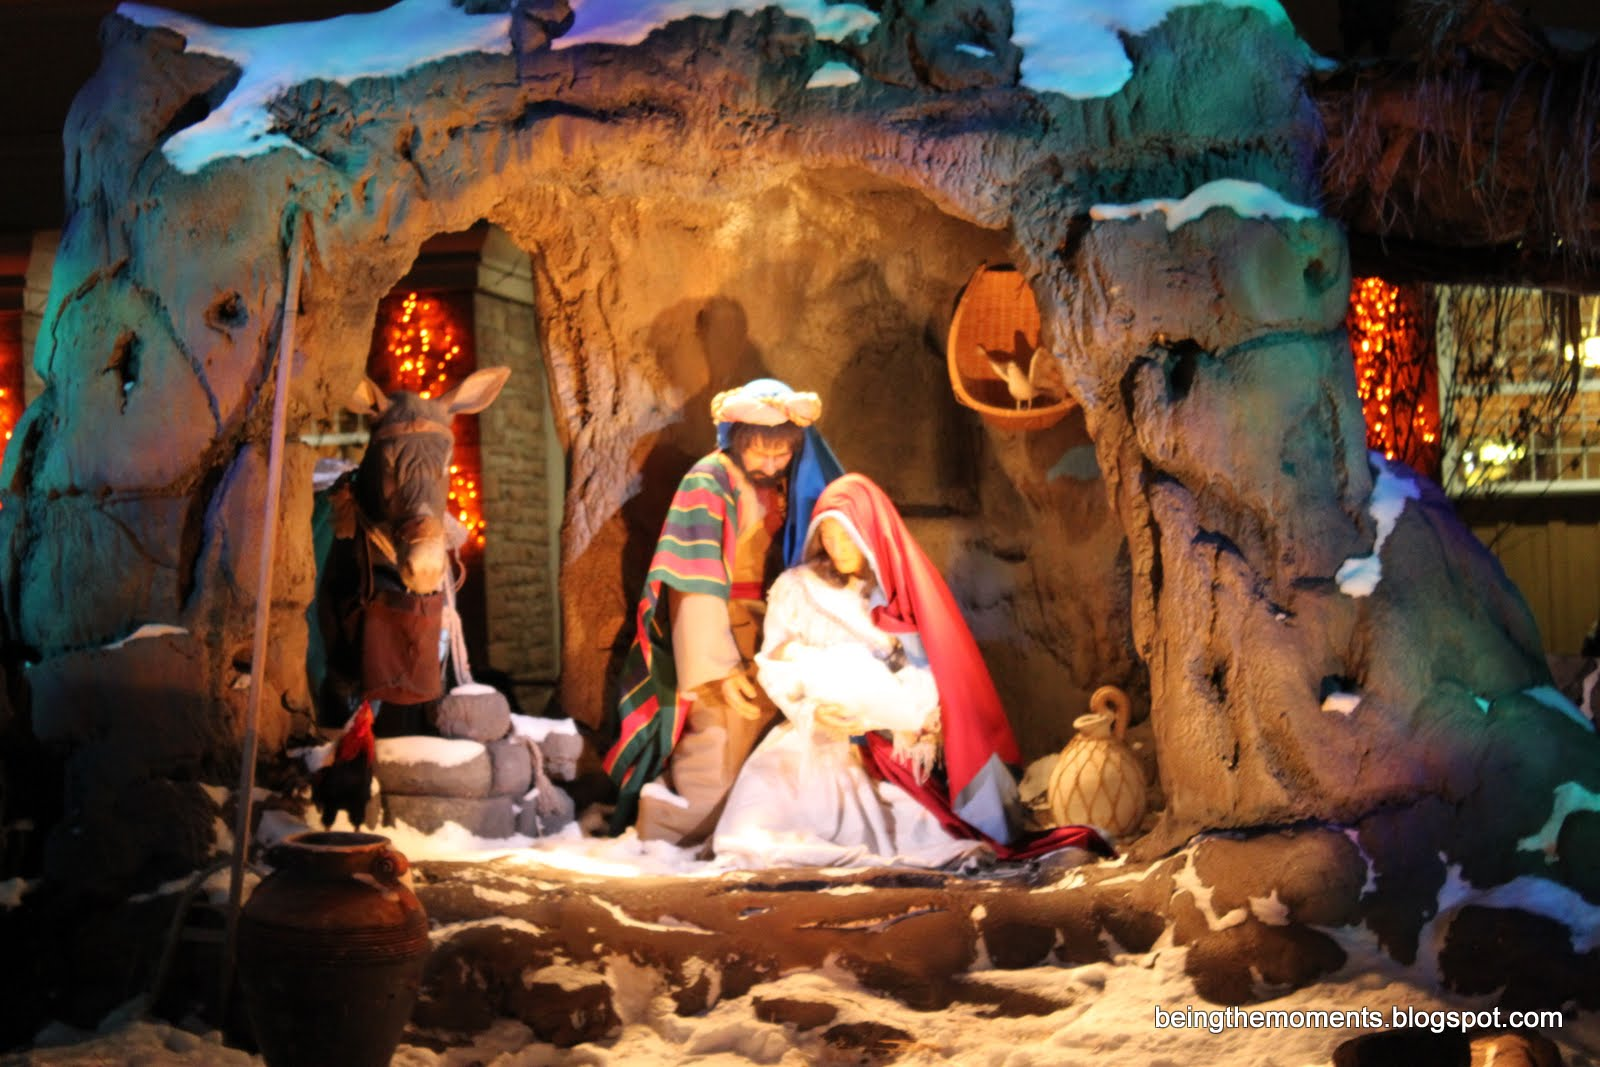 a story about the birth of jesus christ Born: 4 bce bethlehem, judea died: c 29 ce jerusalem, judea judean  religious leader jesus of nazareth, also known as jesus christ, was the central.